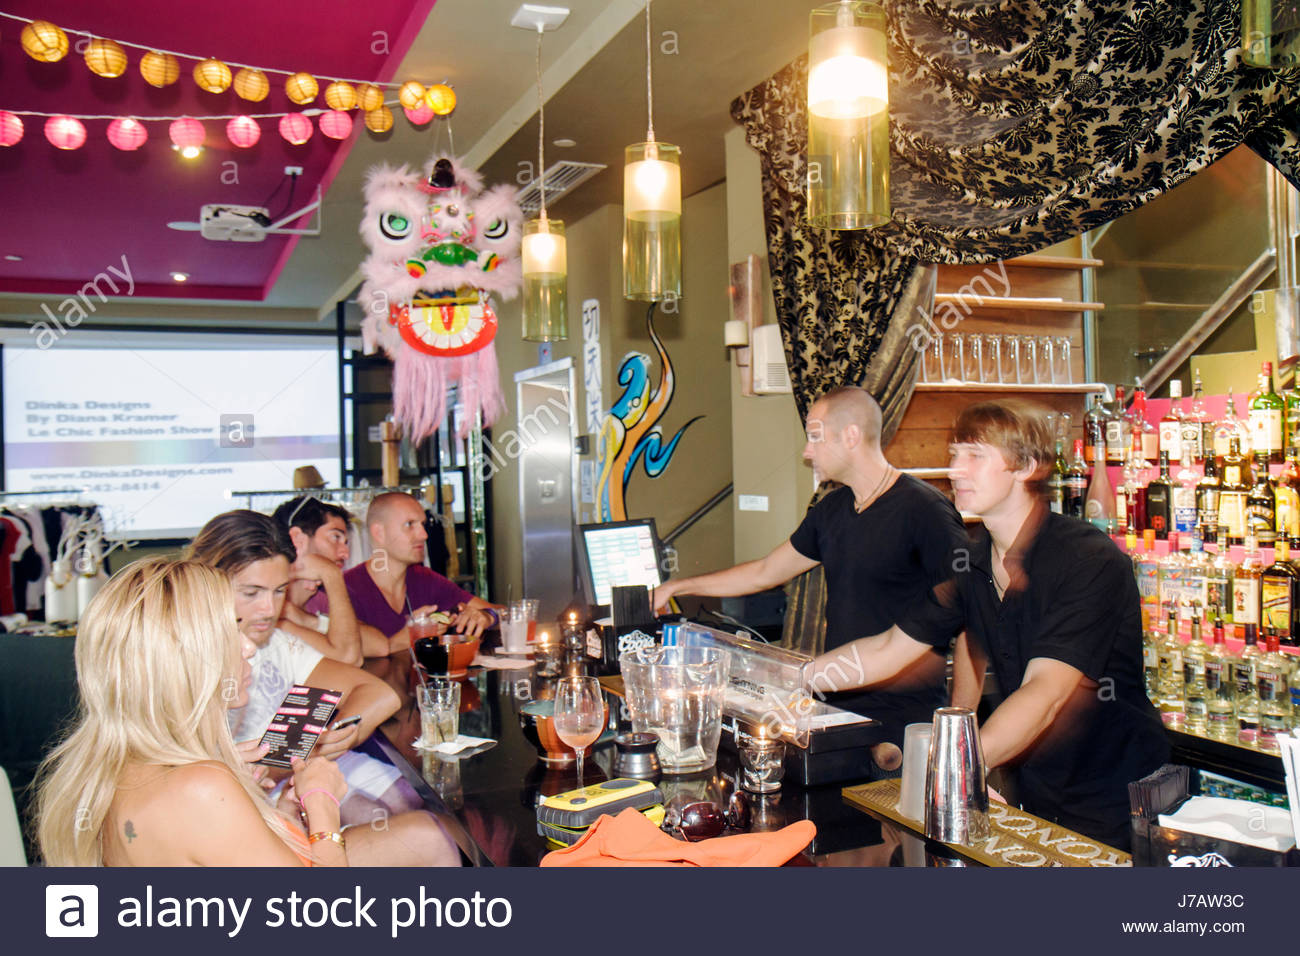 miami beach florida collins avenue kung fu kitchen and sushi restaurant bar bartenders customers interior - Kung Fu Kitchen